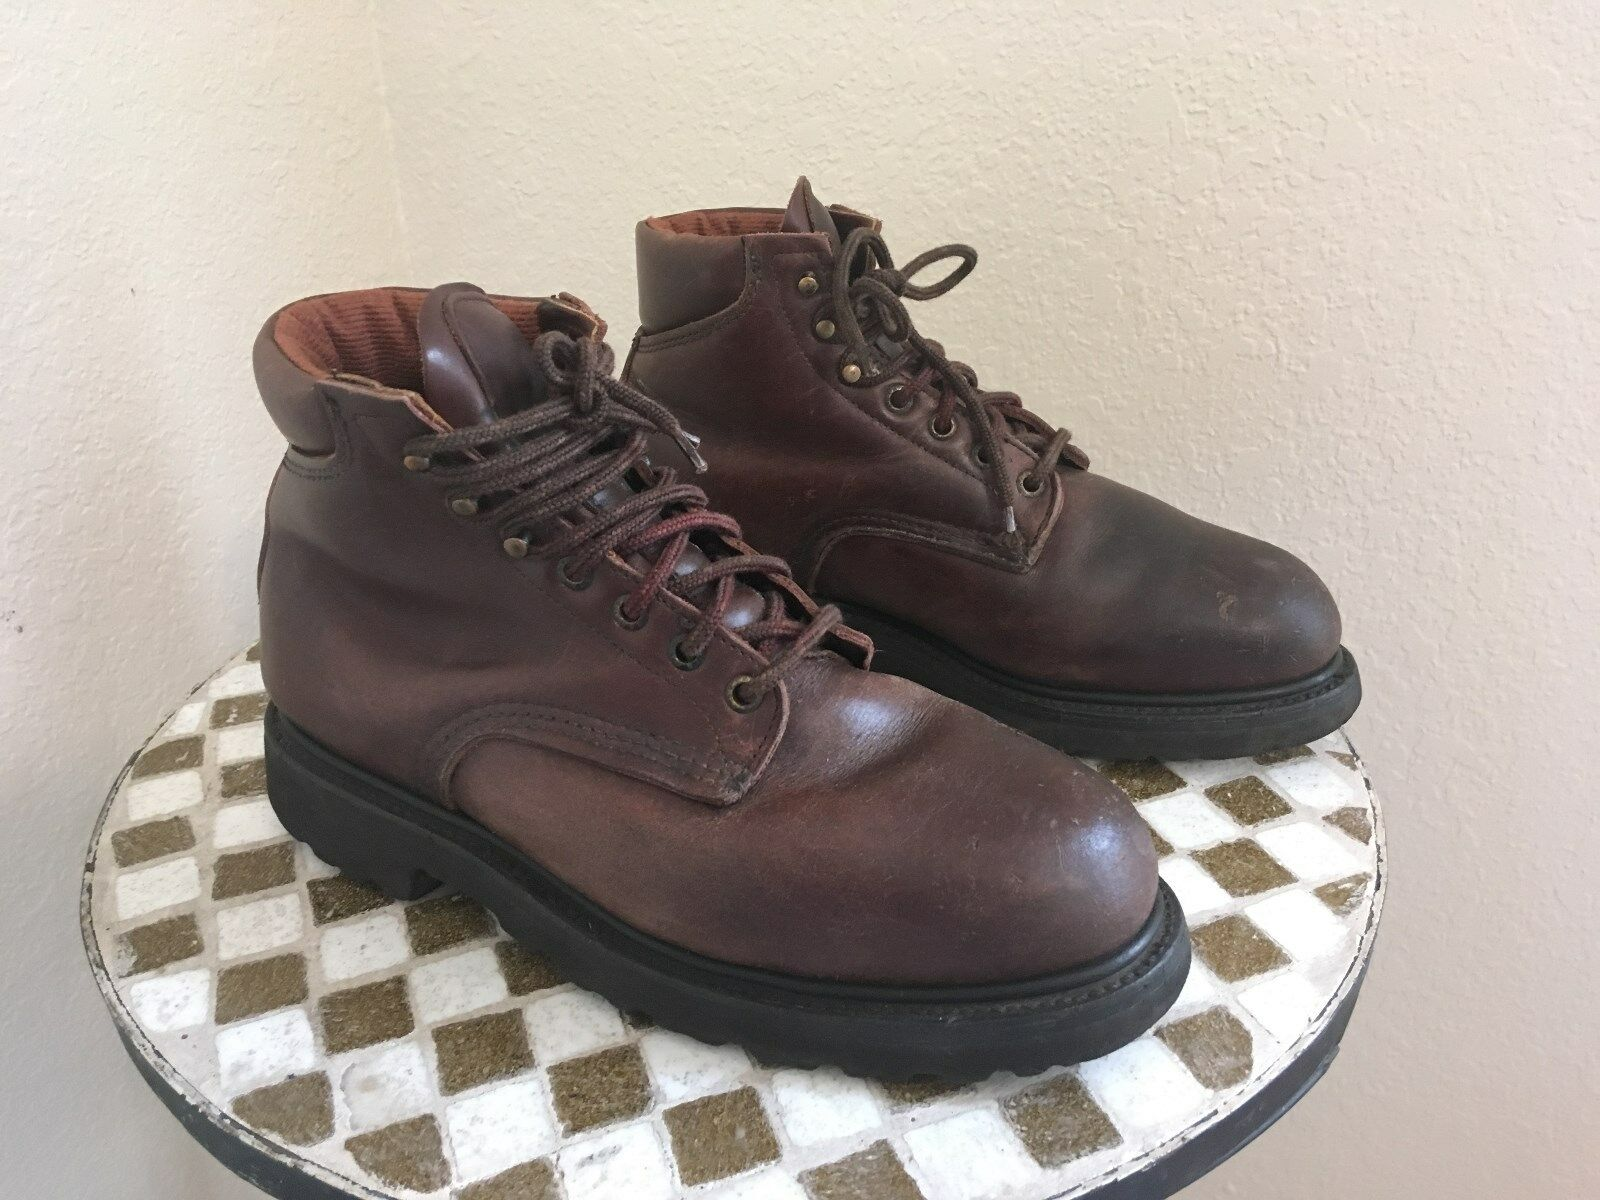 USA VINTAGE DISTRESSED OXBLOOD rosso WING CHORE FARM WORK ANKLE TRUCK stivali 8.5 D